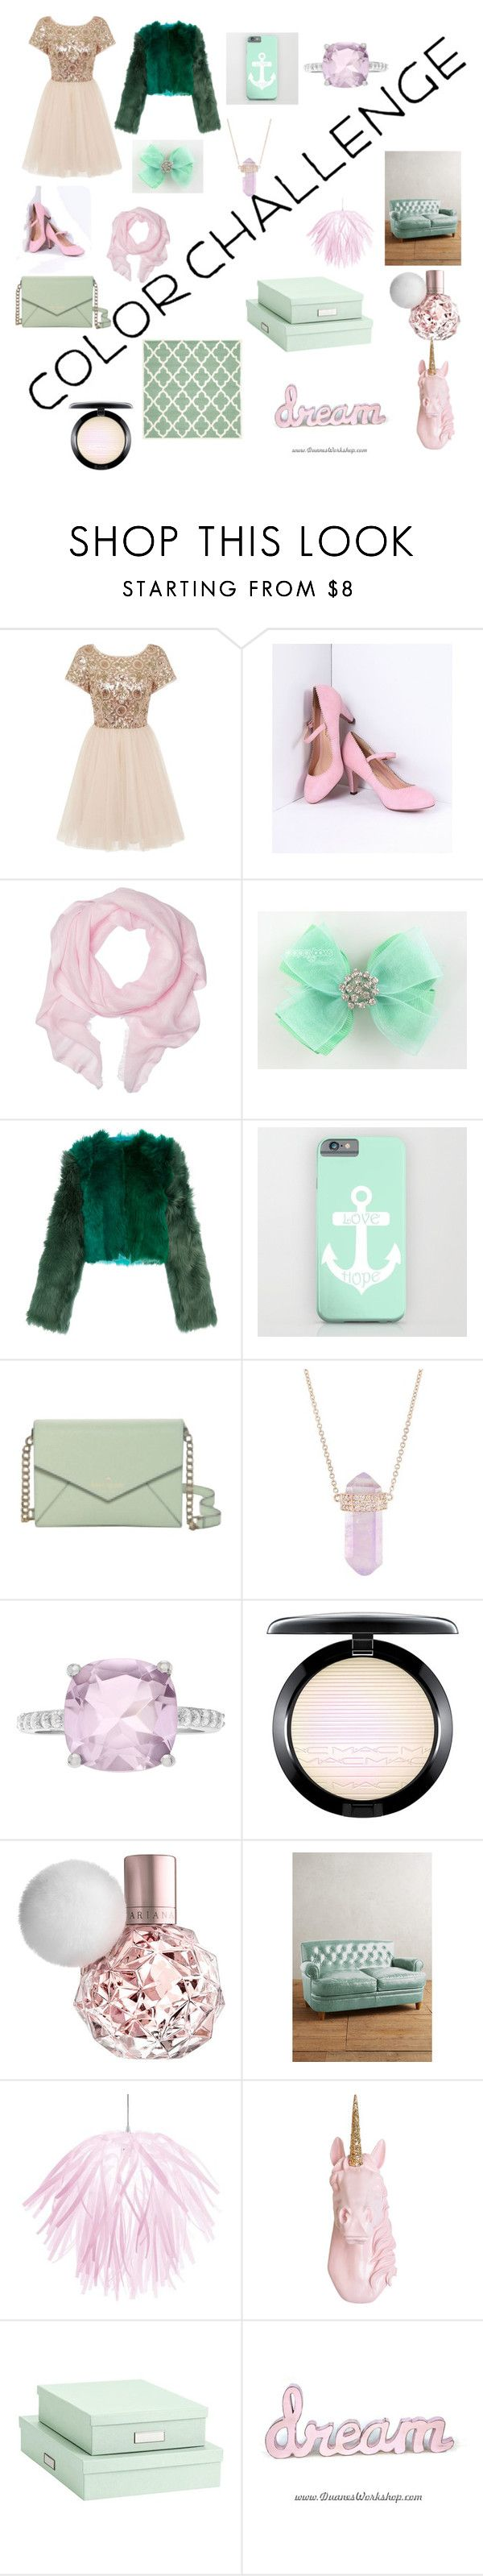 """""""green and blush color challenge"""" by mary-miller-4 ❤ liked on Polyvore featuring Chi Chi, Love Quotes Scarves, Diane Von Furstenberg, Kate Spade, Luna Skye, MAC Cosmetics, Anthropologie, Dainolite, Bigso and Home Decorators Collection"""